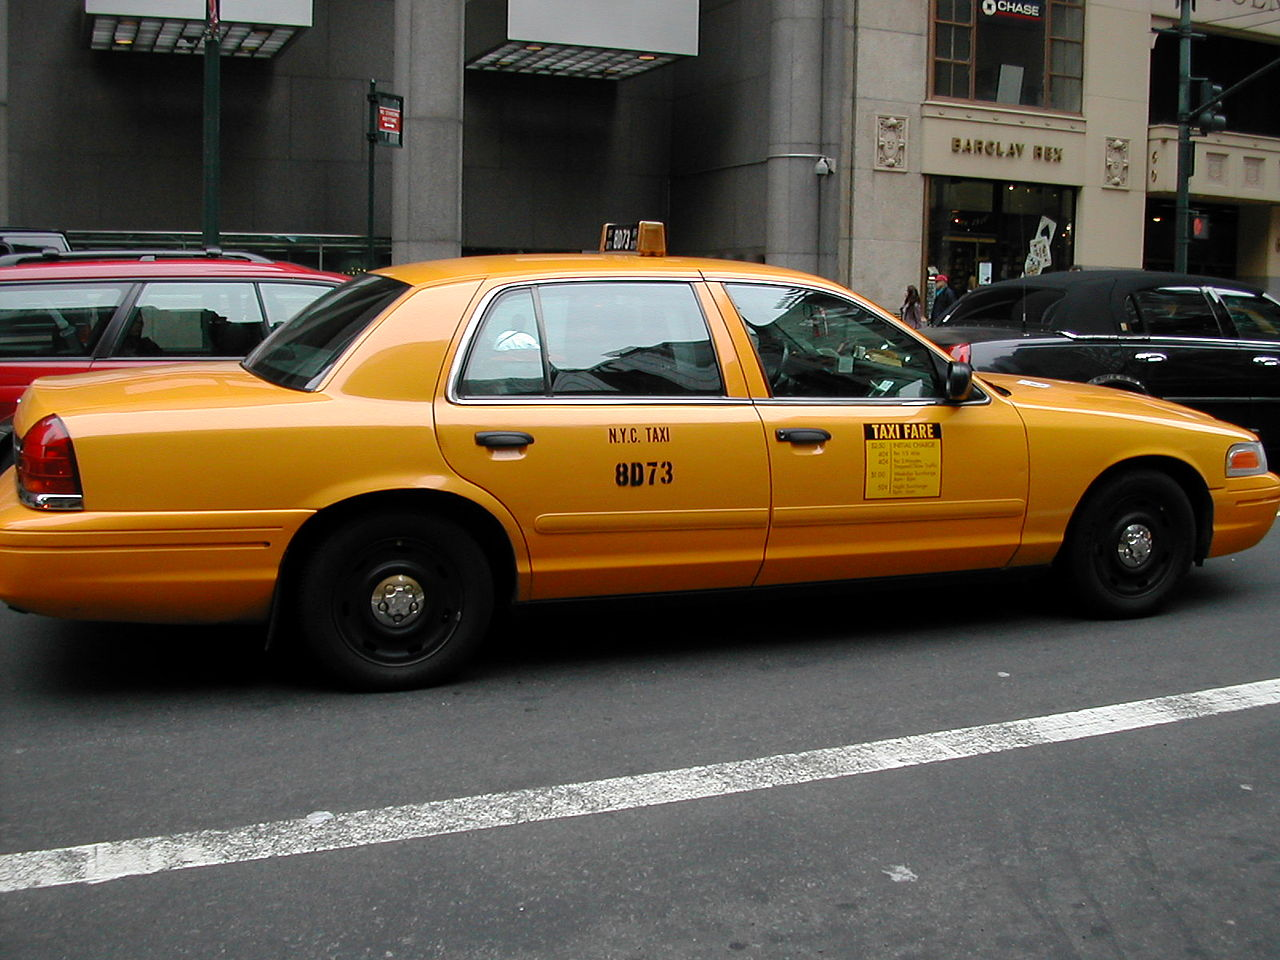 nyc taxi ford crown vic 1386 ford motor company part xiii the ford crown victoria myn  at gsmx.co